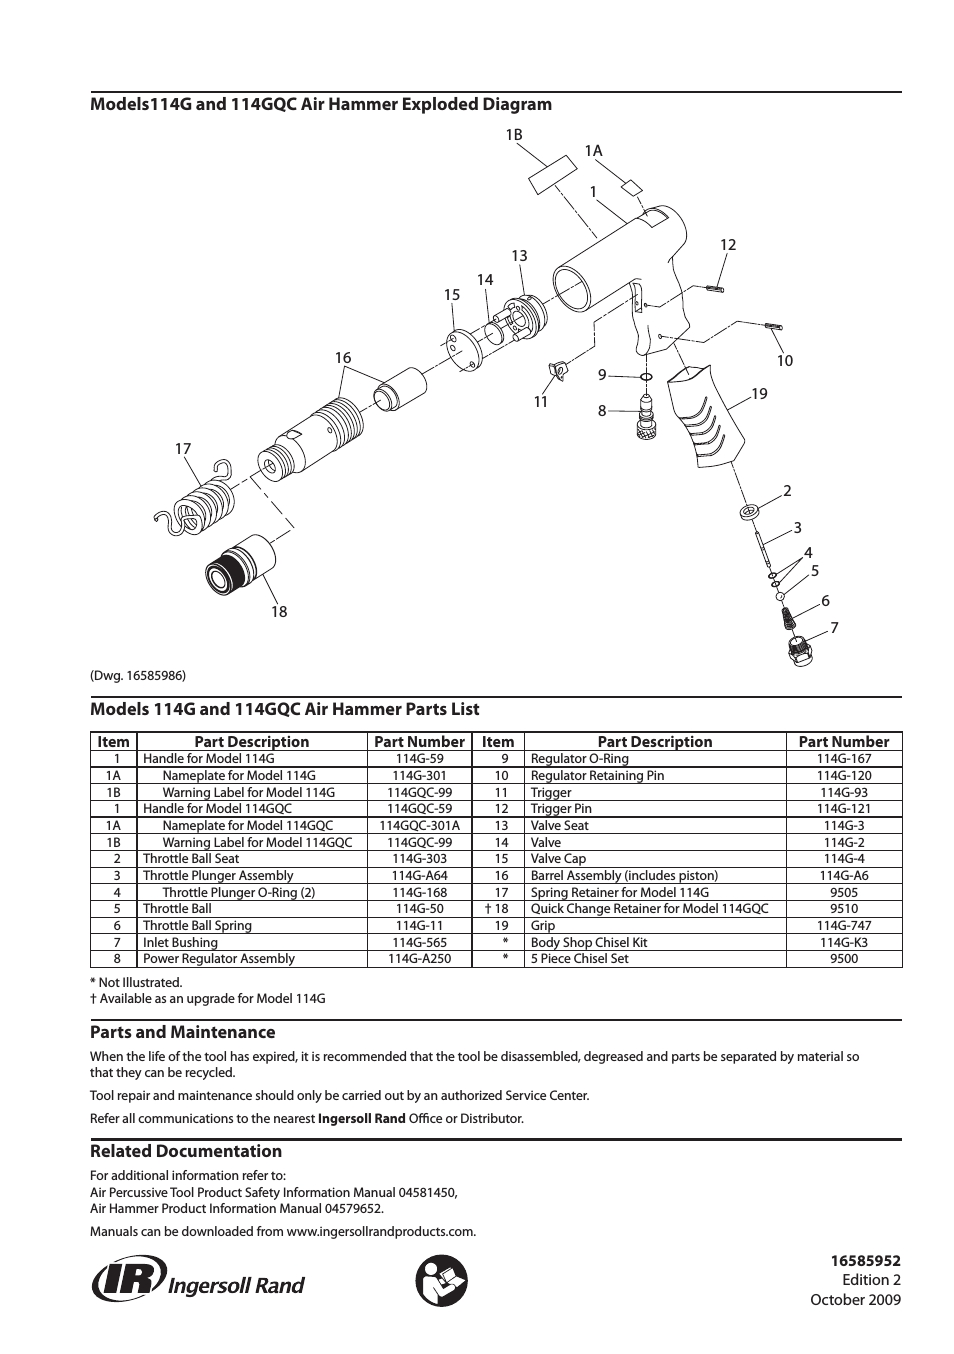 Ingersoll-Rand 114G User Manual | 2 Pages regarding Ingersoll Rand Air Tool Parts Diagrams